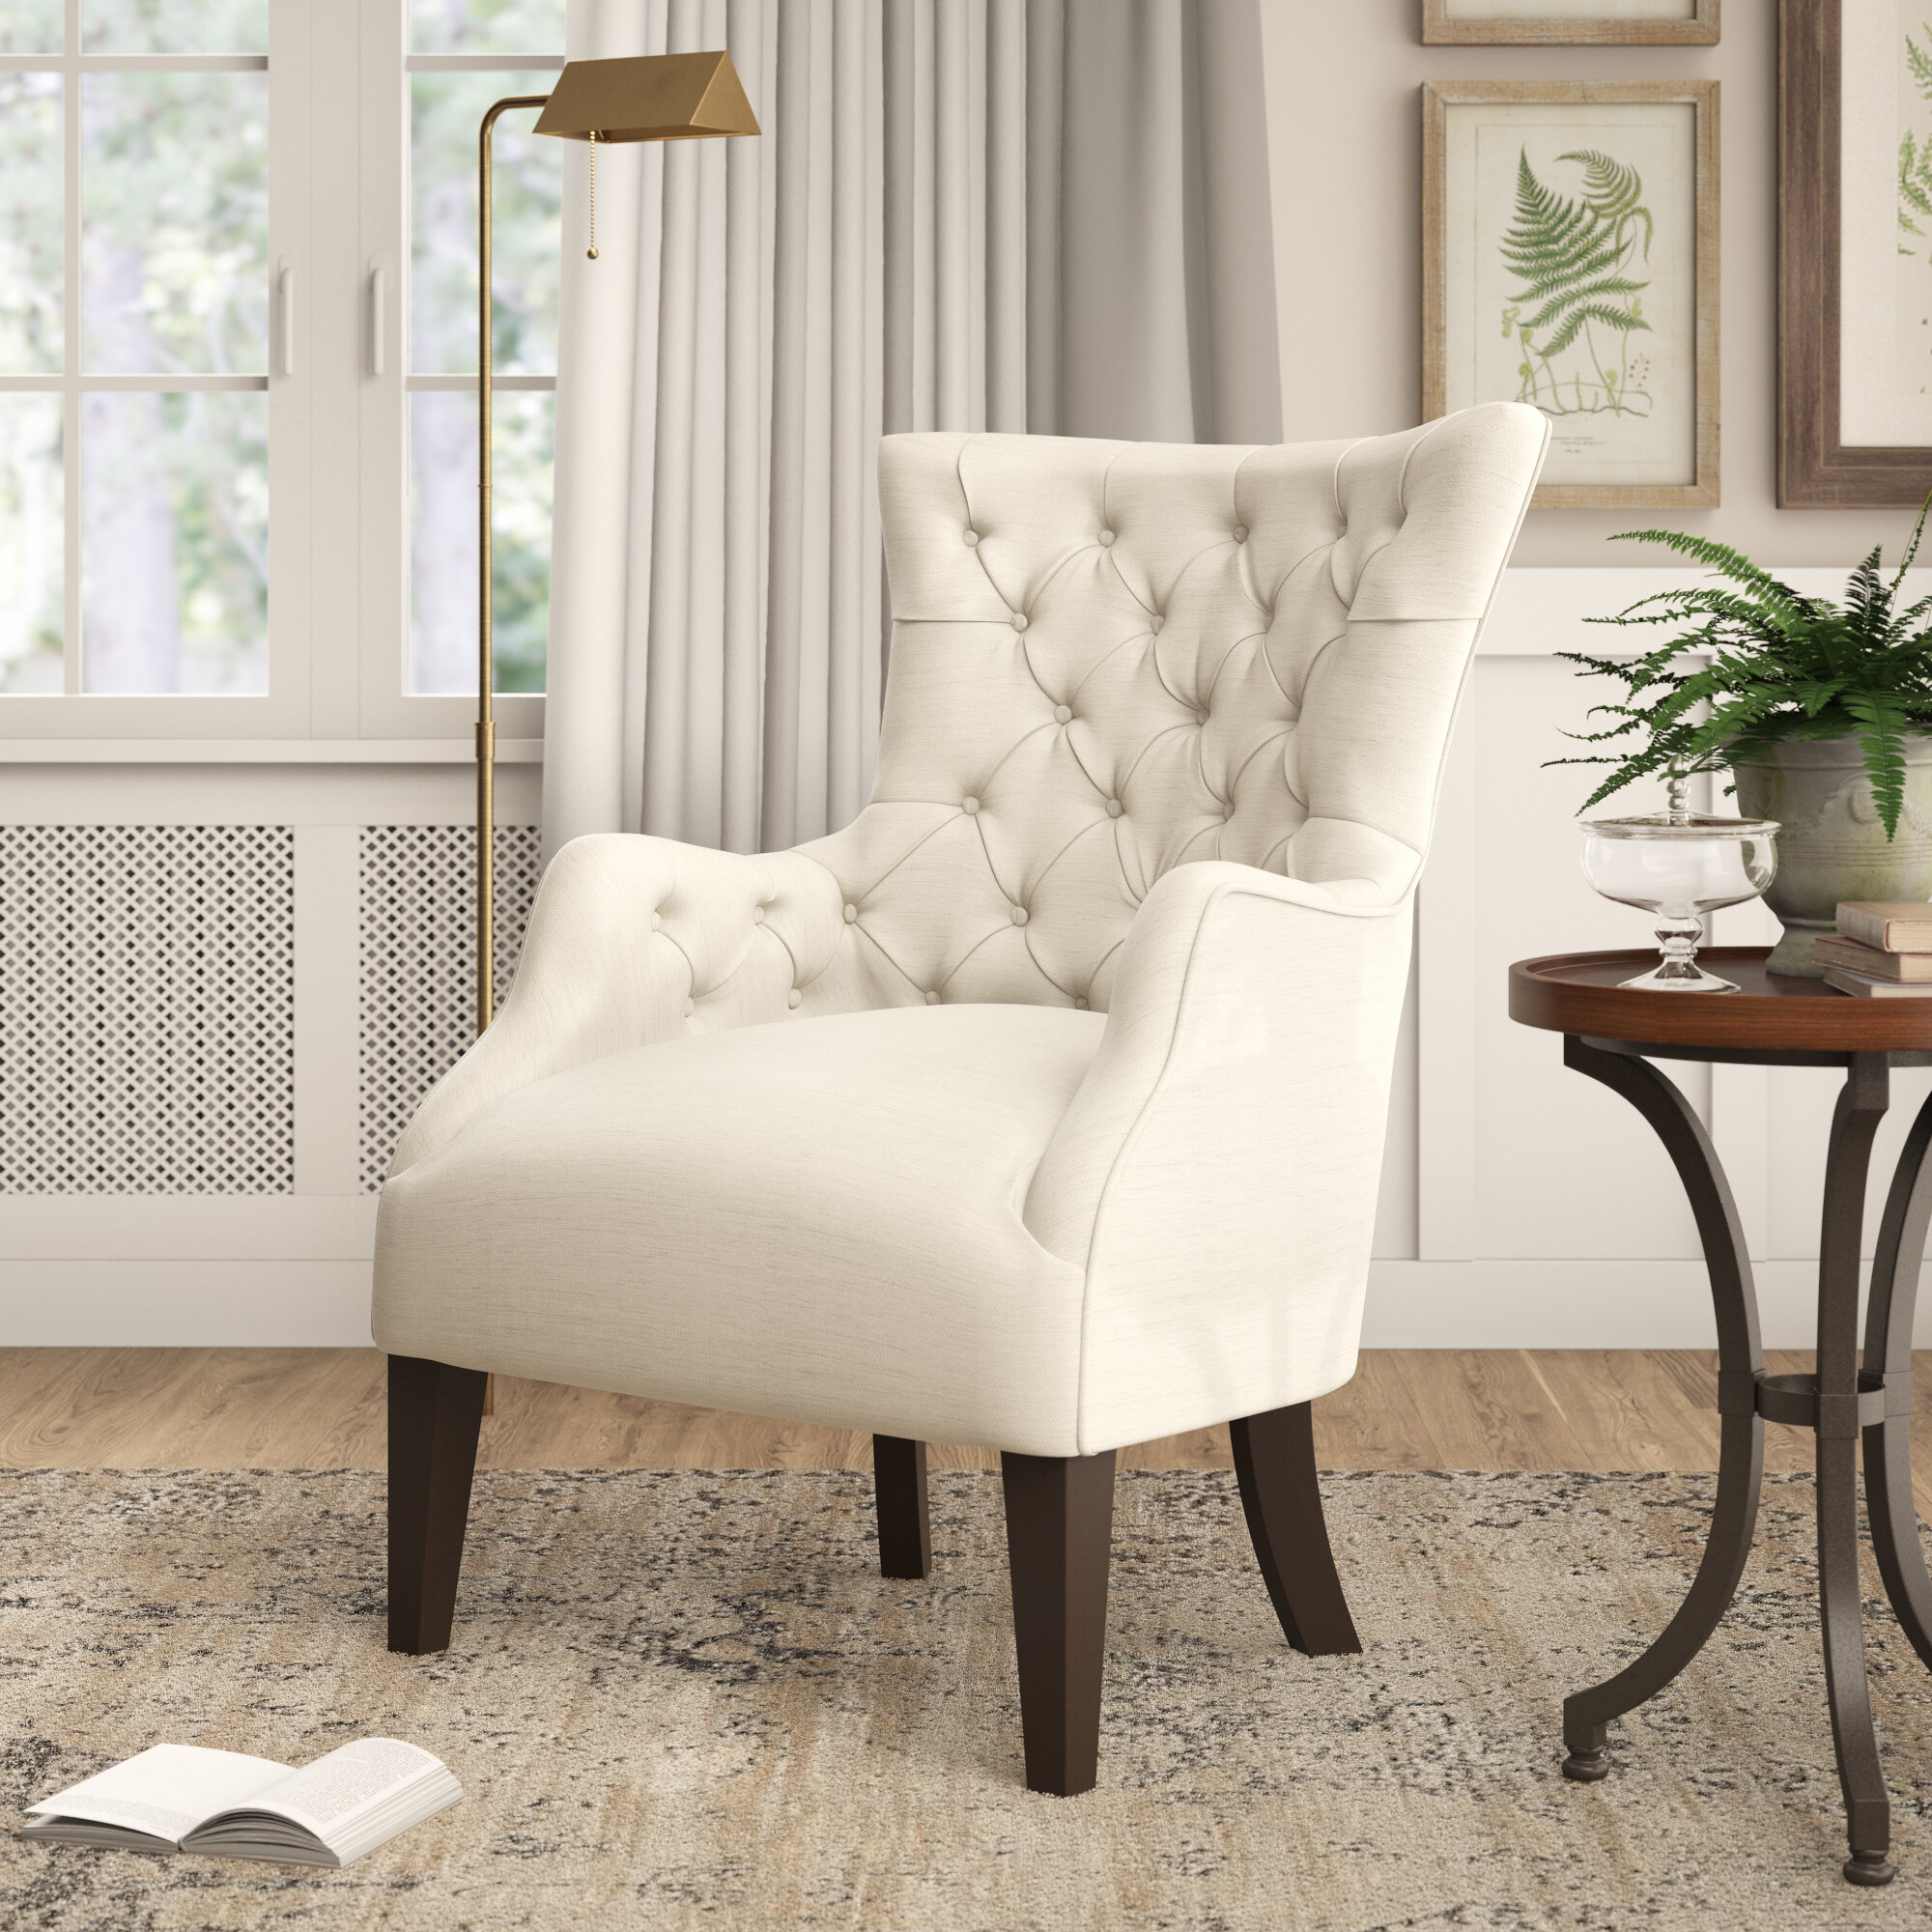 Steelton Button Wingback Chair Regarding Allis Tufted Polyester Blend Wingback Chairs (View 7 of 15)